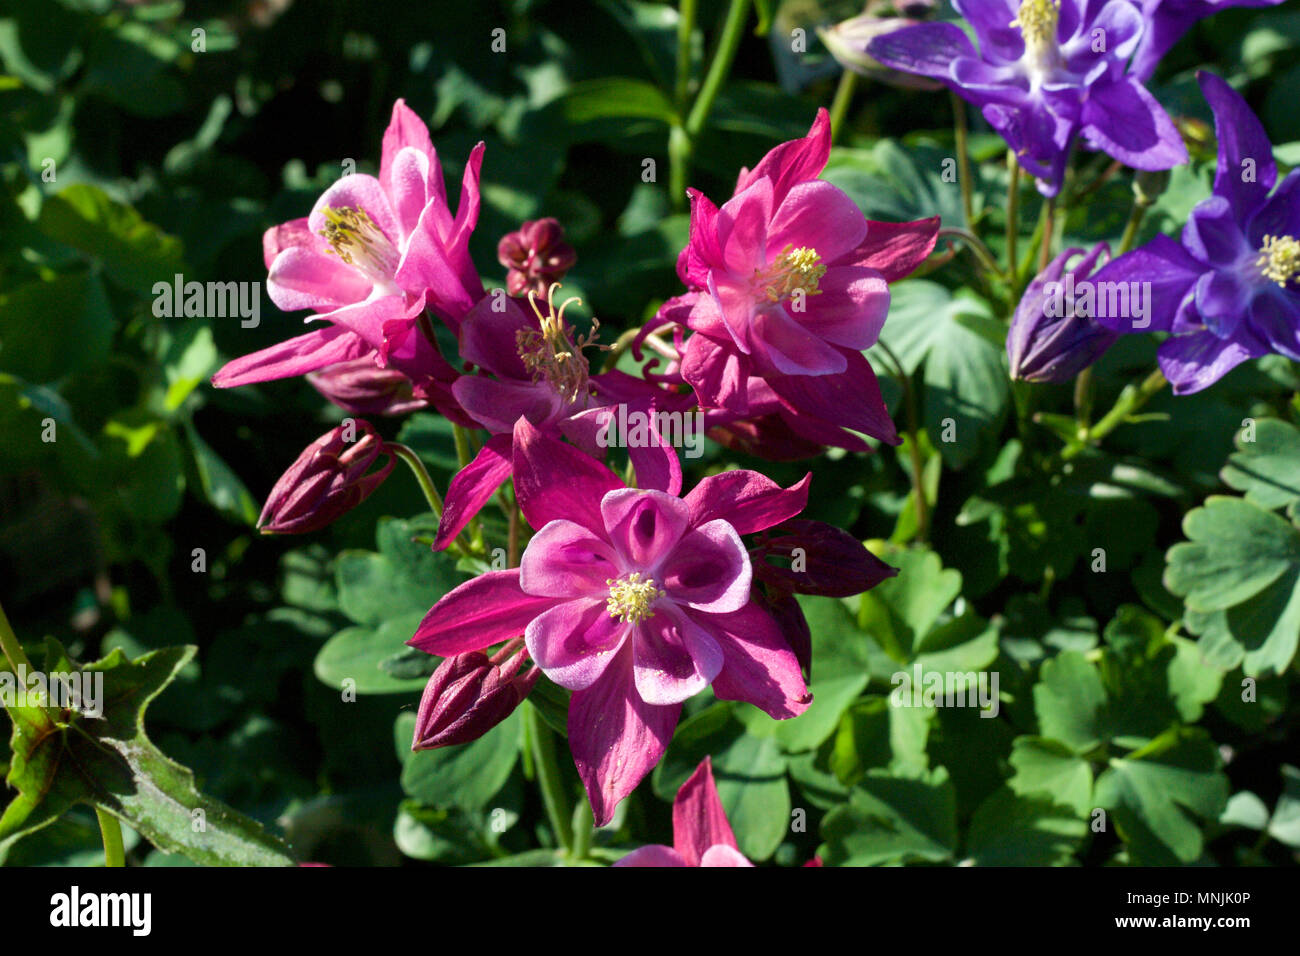 Close Up View Of Beautiful Pink And White Columbine Flowers In Full